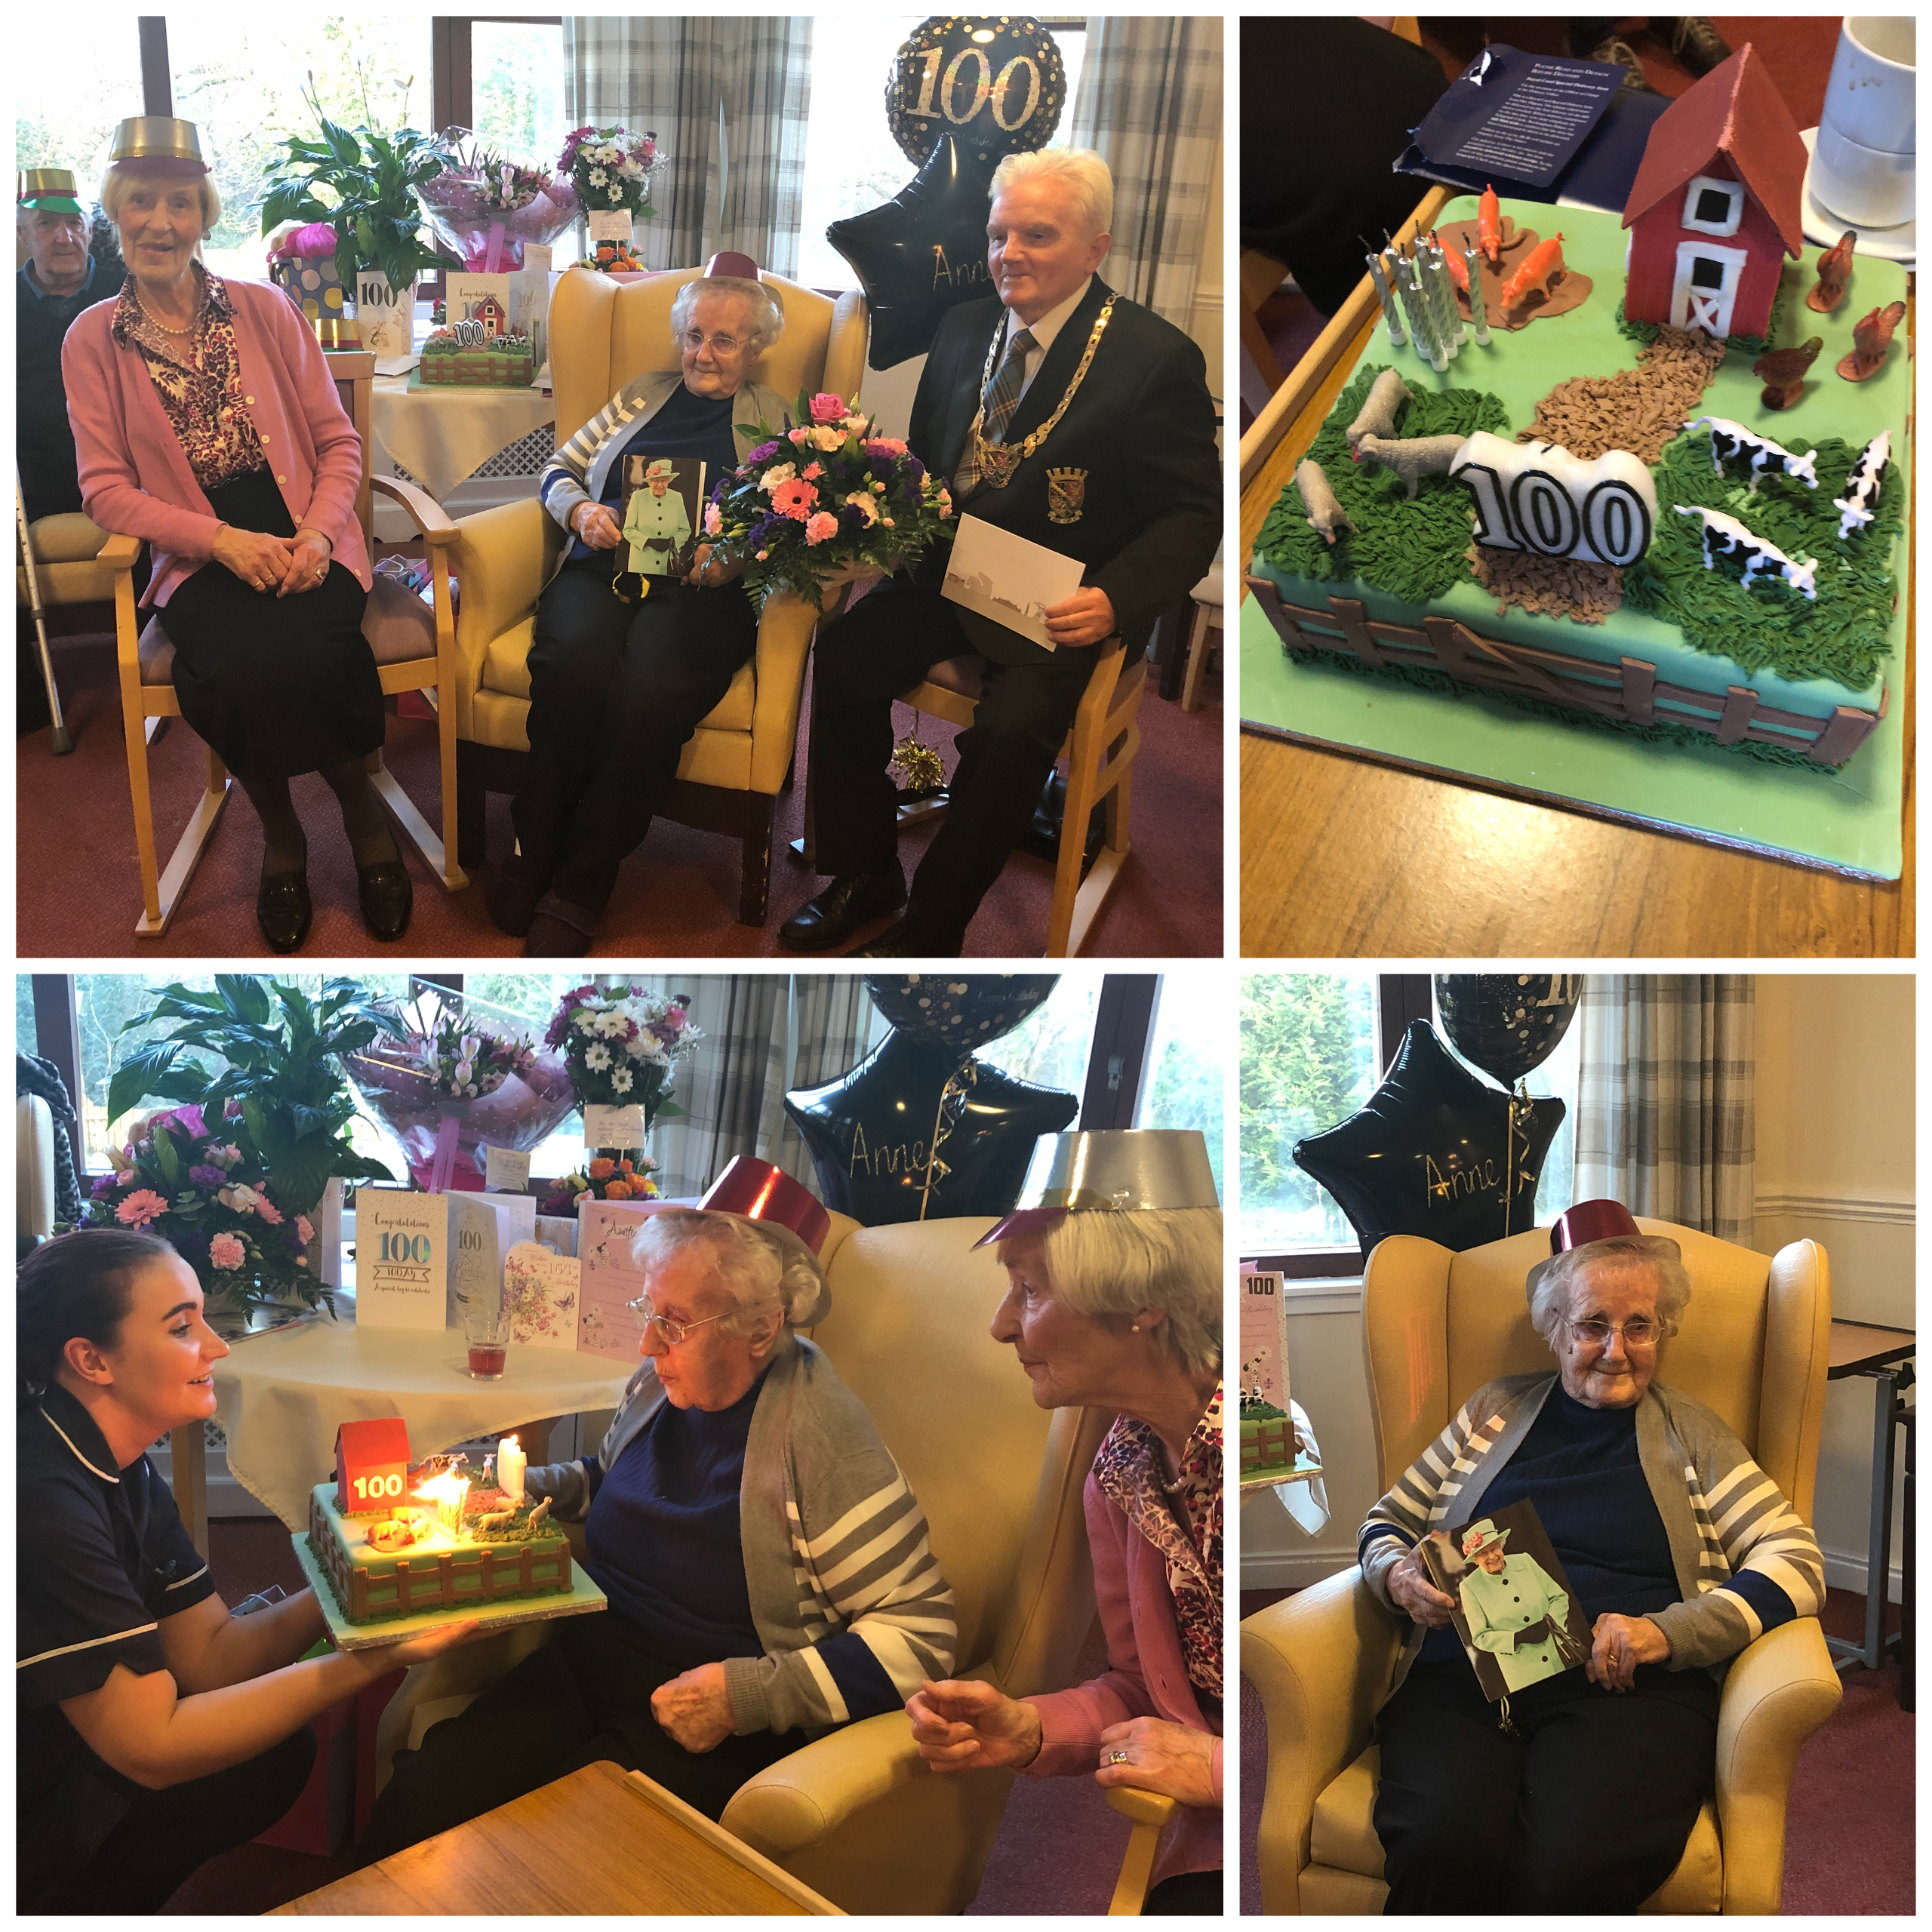 Wallside Grange Care Home resident Anne Whyte celebrates her 100th Birthday with a card from the Her Majesty The Queen.